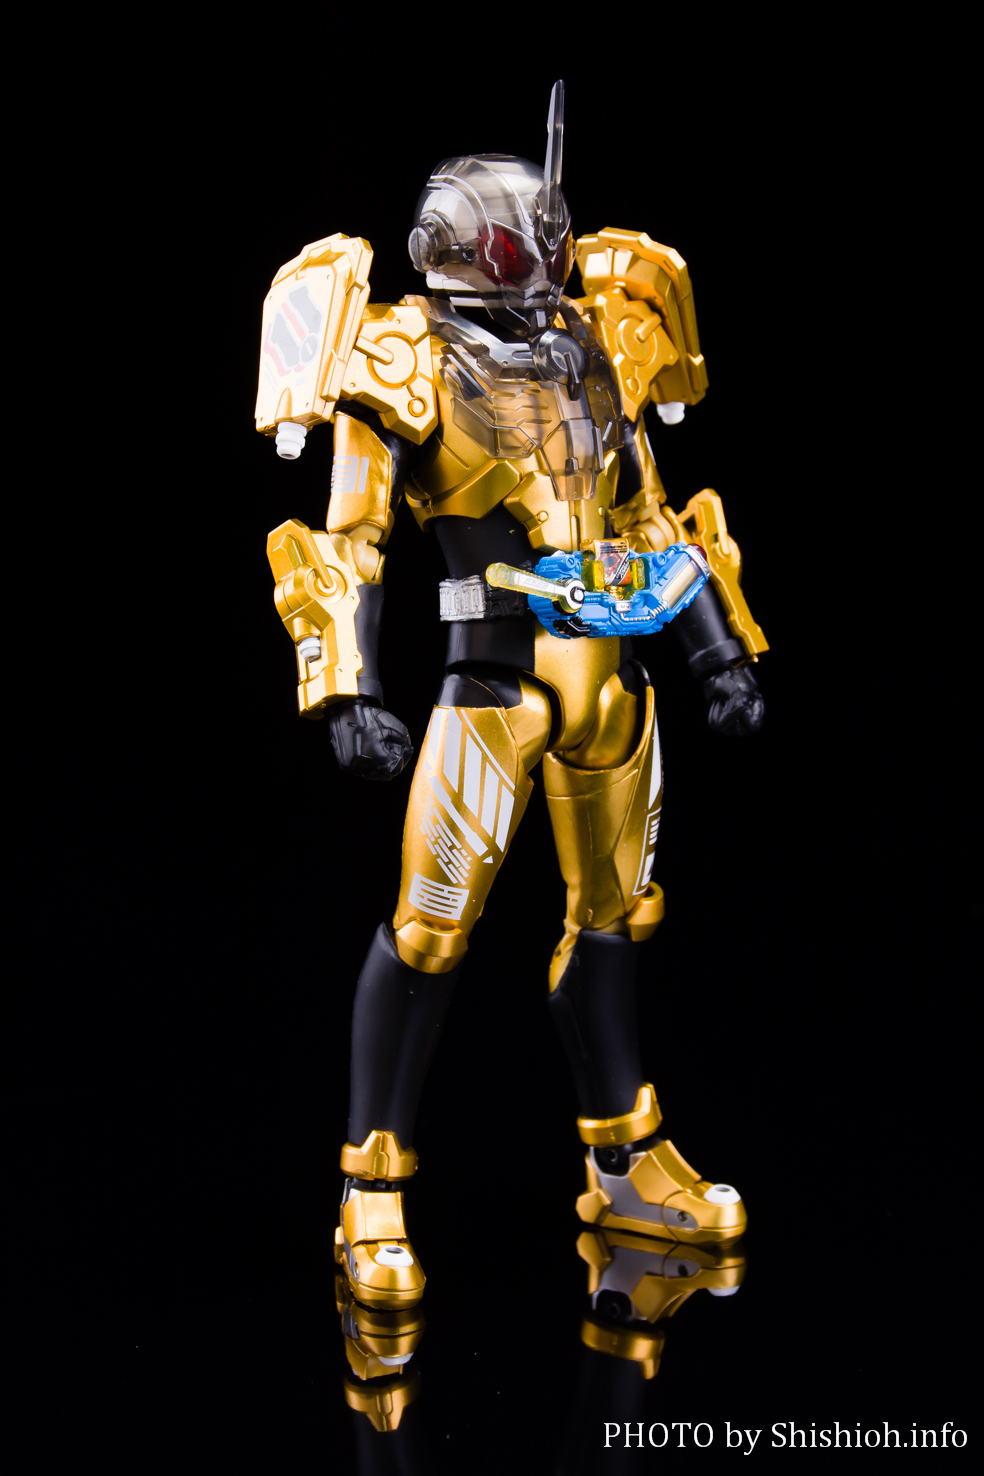 S.H.Figuarts 仮面ライダーグリス